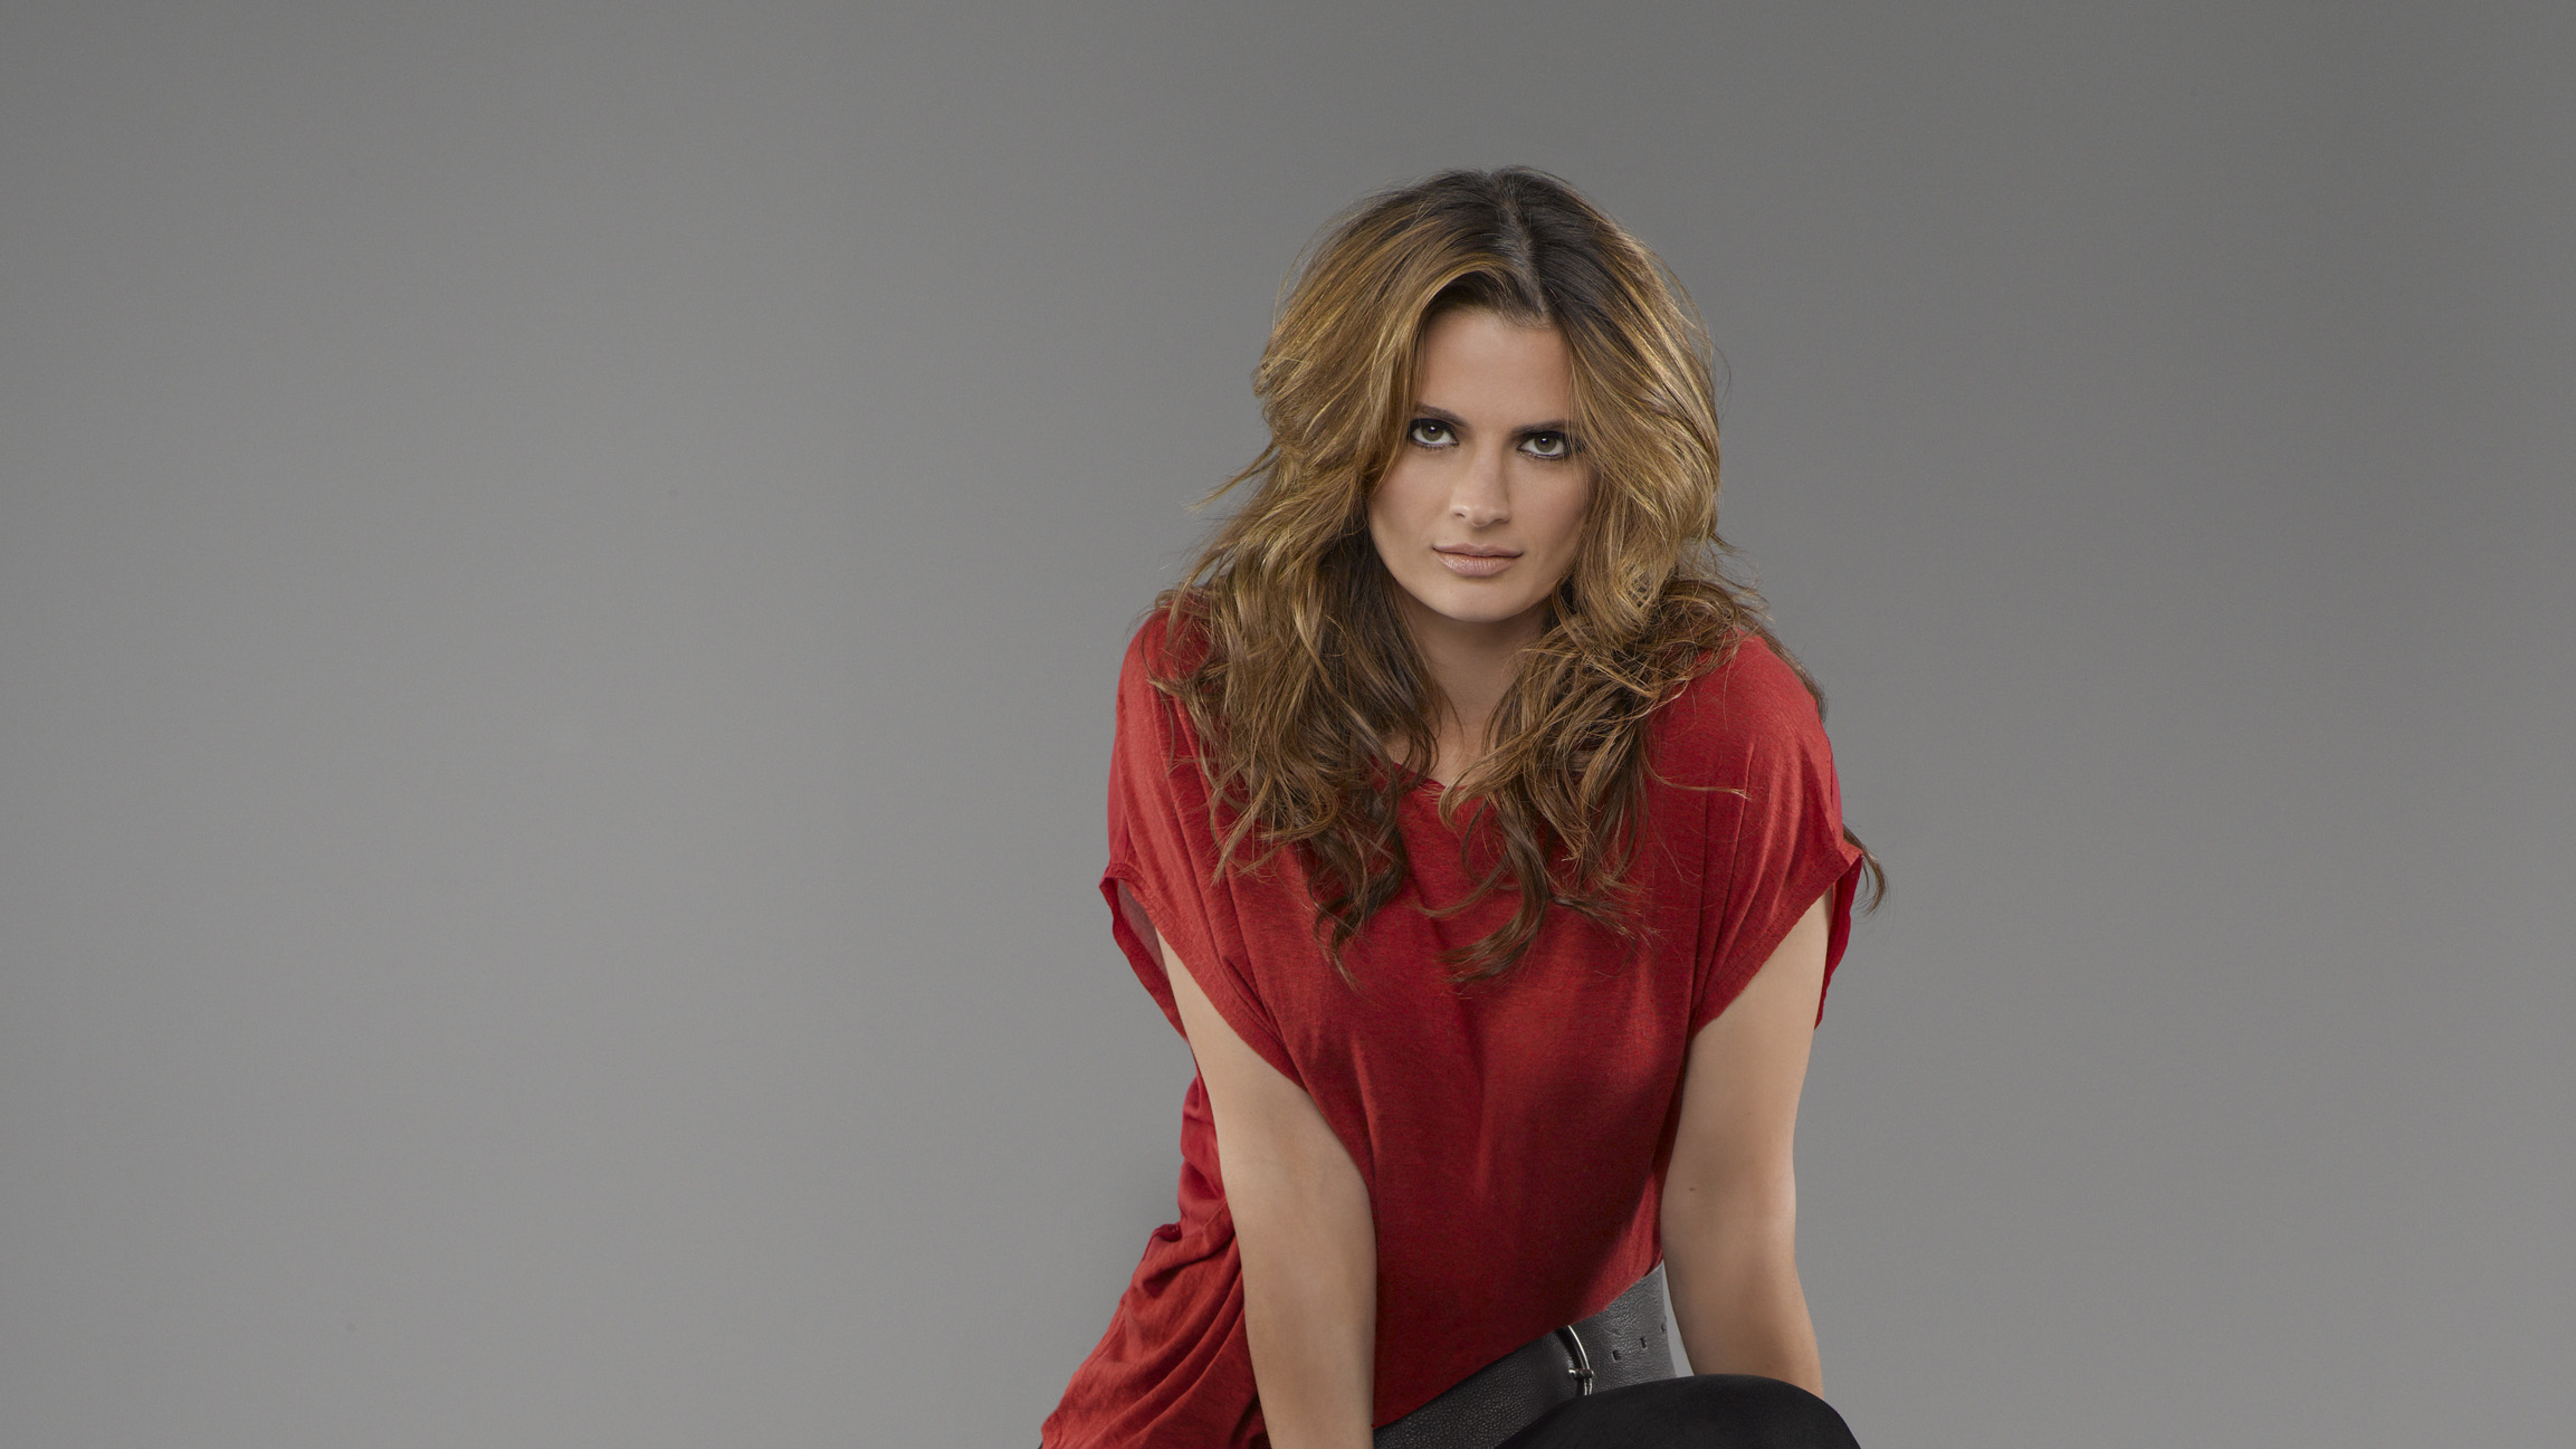 Stana Katic Castle Season 5 Photoshoot, Full HD 2K Wallpaper